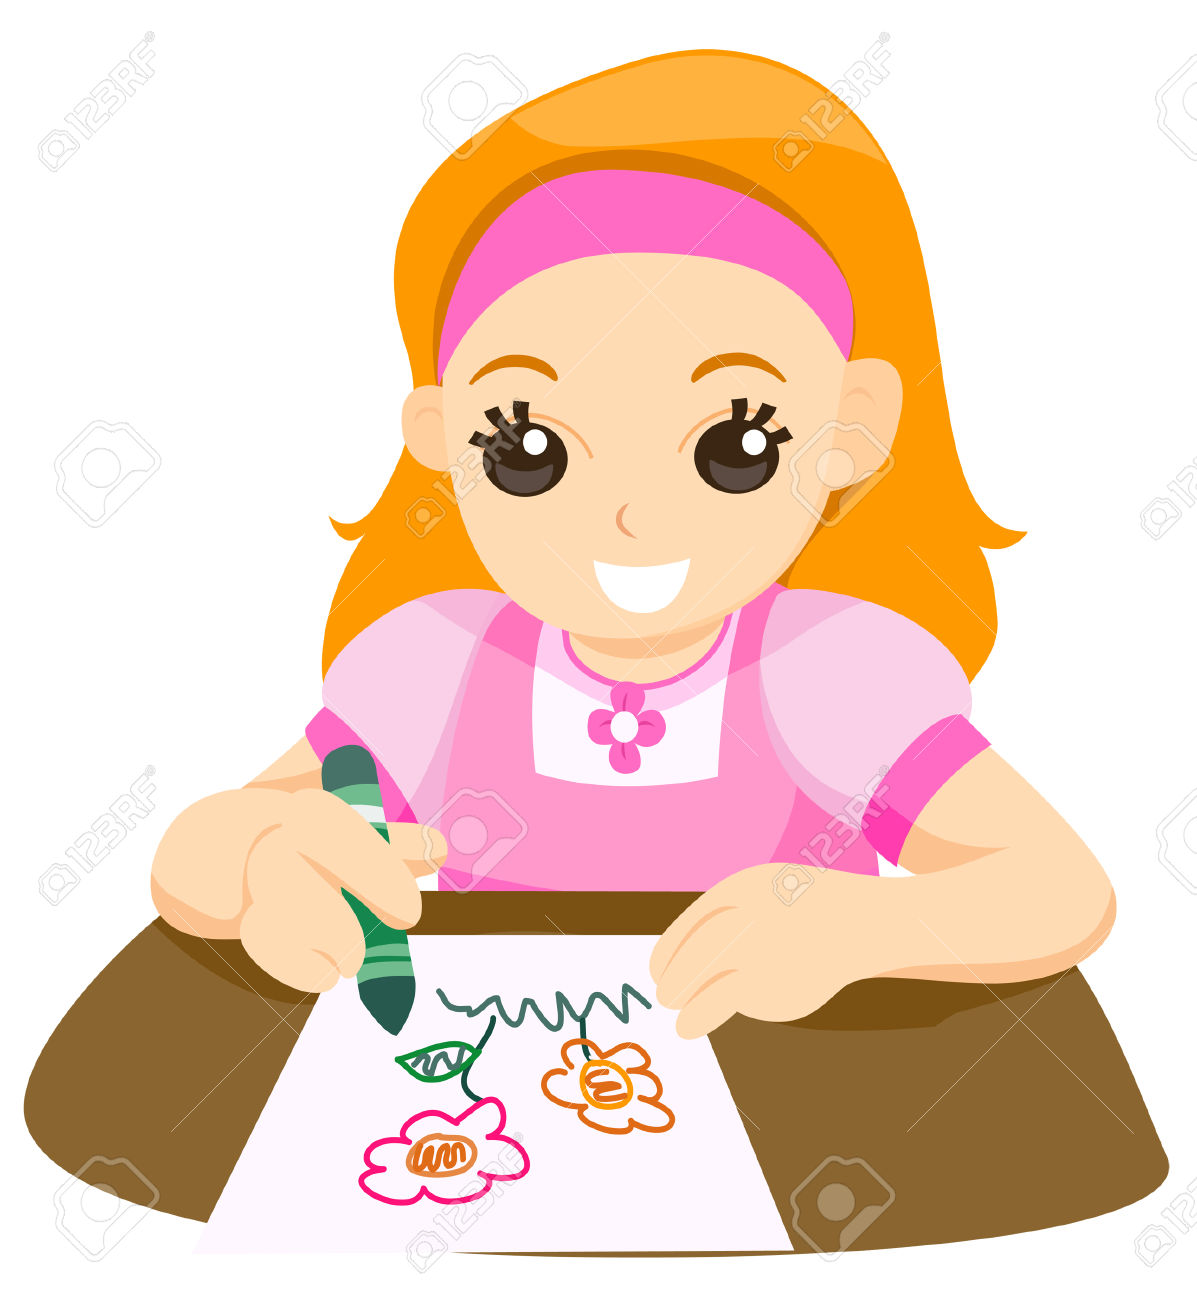 Child Drawing Royalty Free Cliparts, Vectors, And Stock.